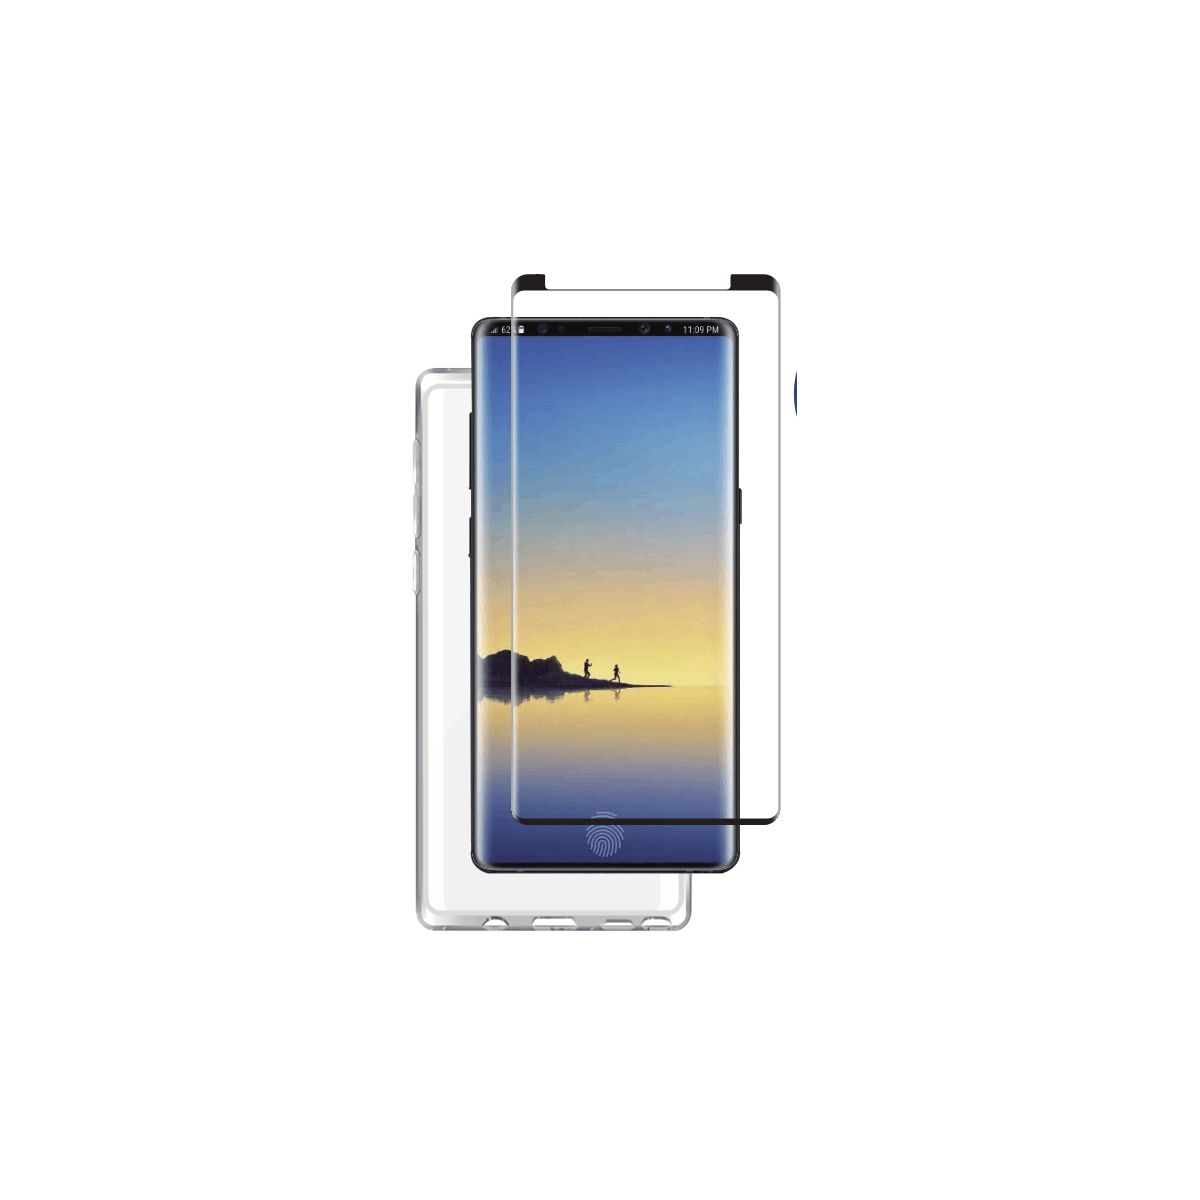 Coque + Protège écran ESSENTIELB Note 9 coque + Verre trempé + Applicateu (photo)